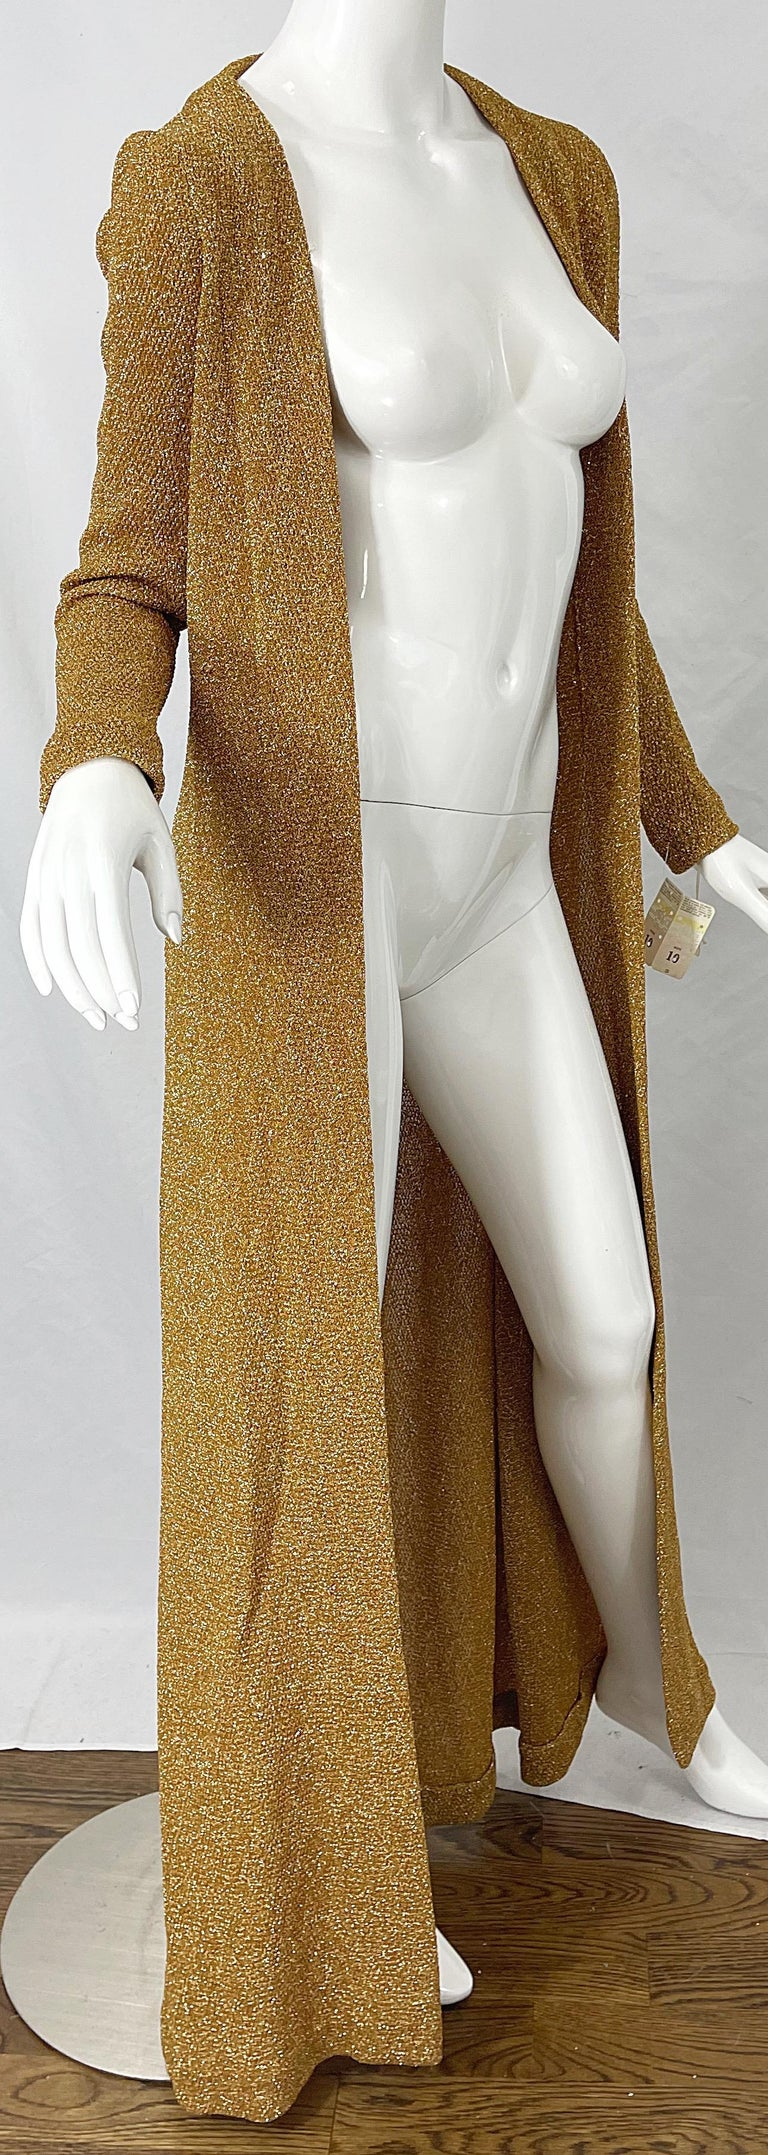 1970s Halston NWT Gold + Silver 70s Vintage Lurex Gown + Duster Cardigan For Sale 11